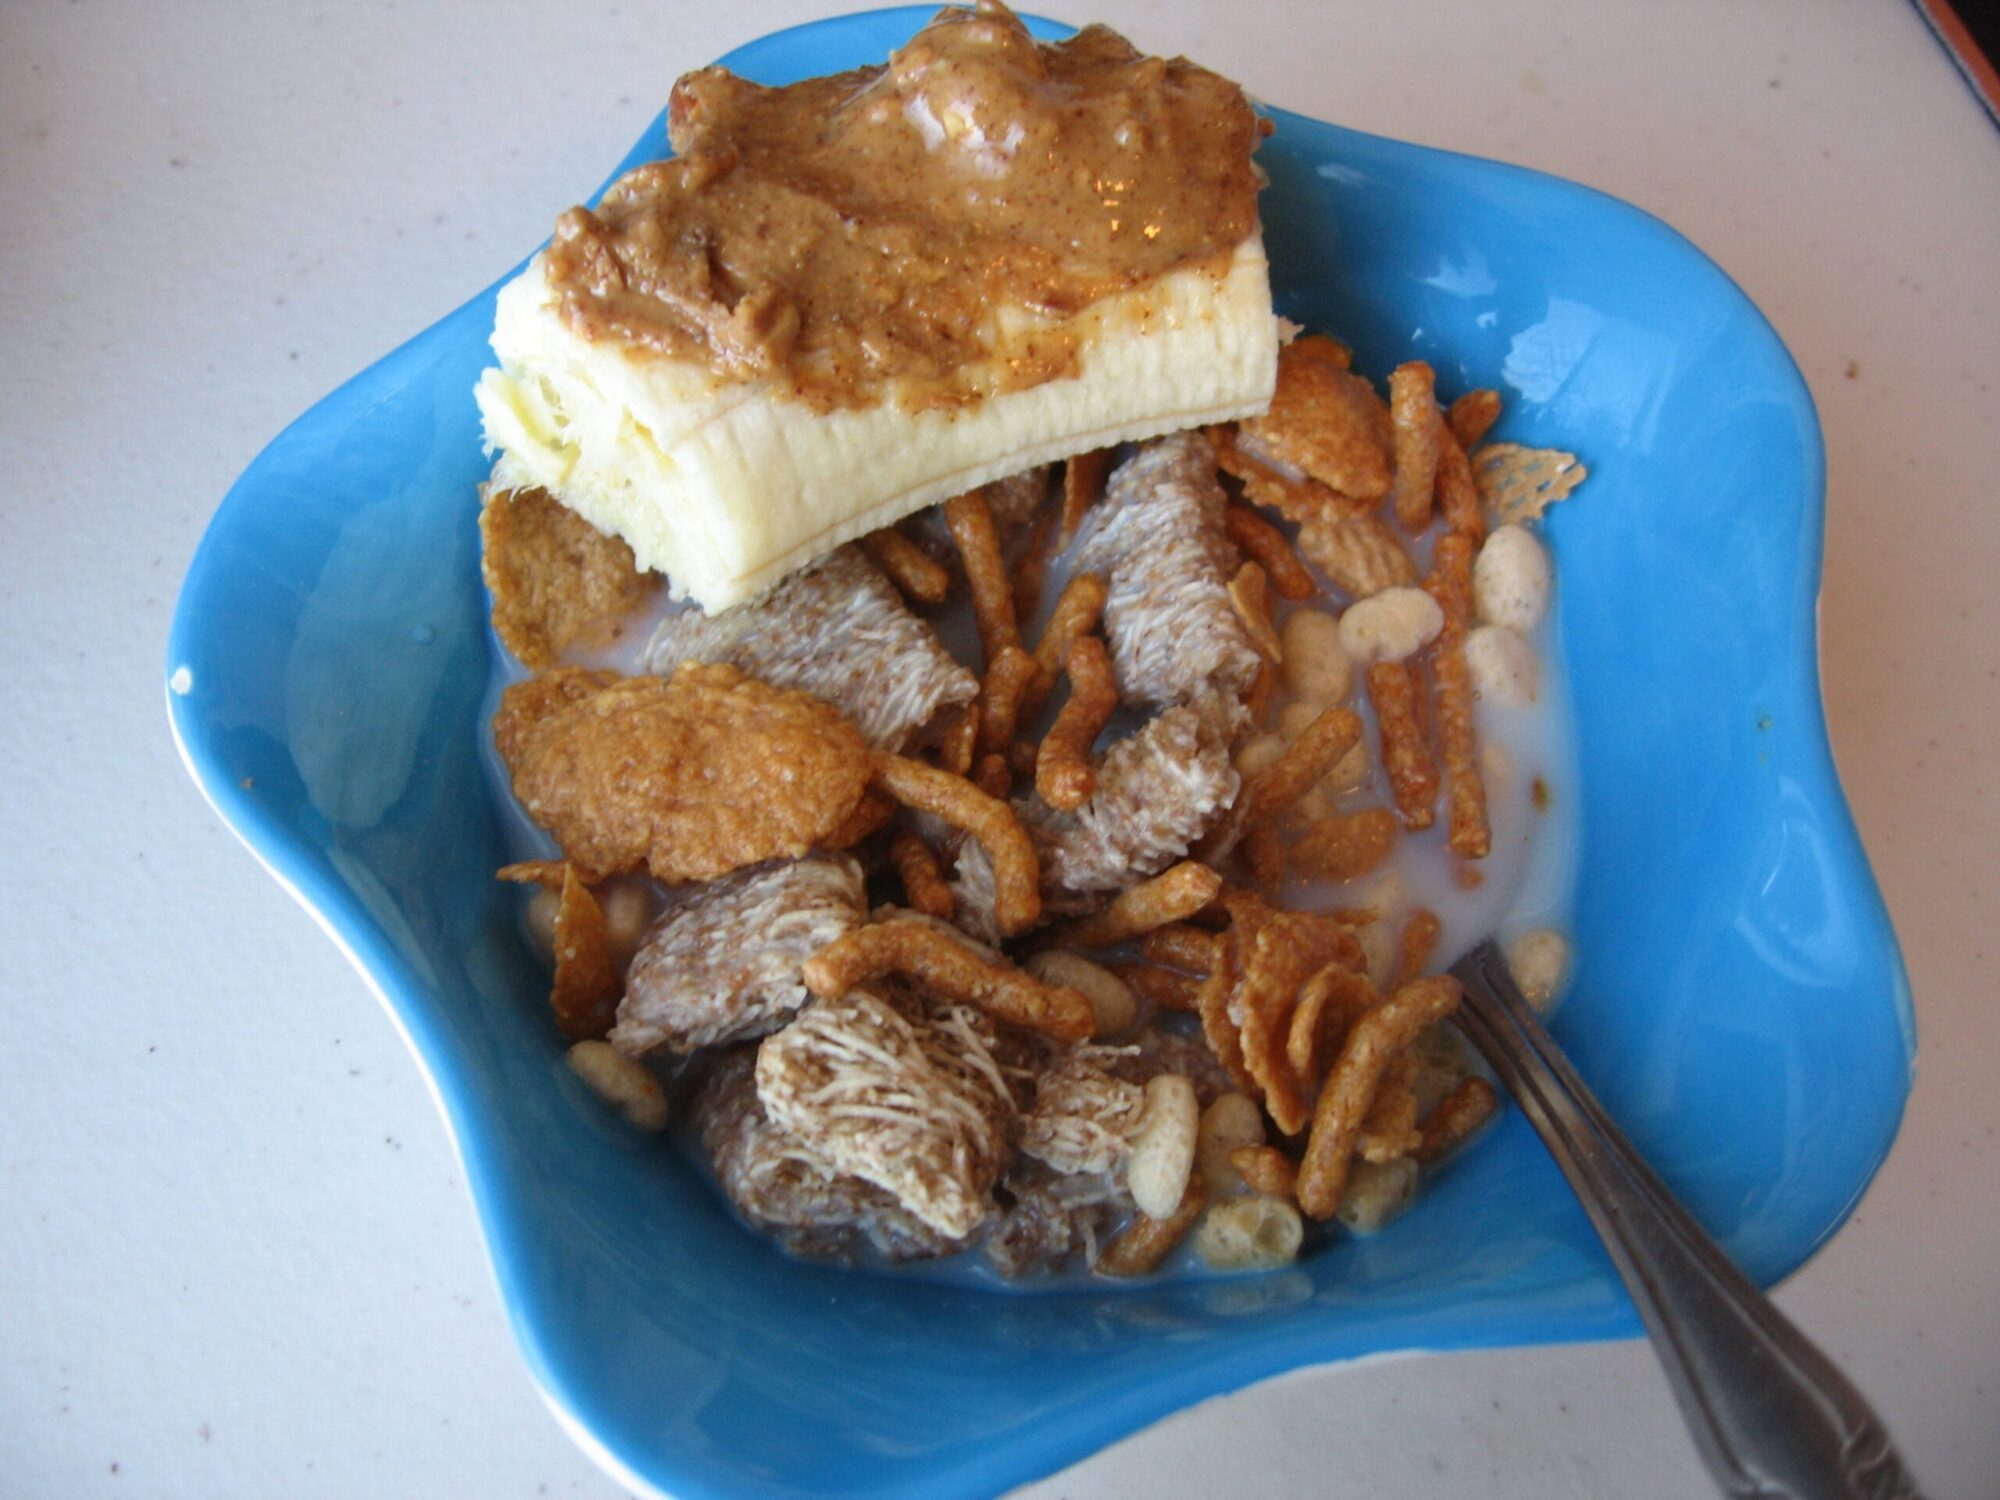 Cinnamon and Cereal